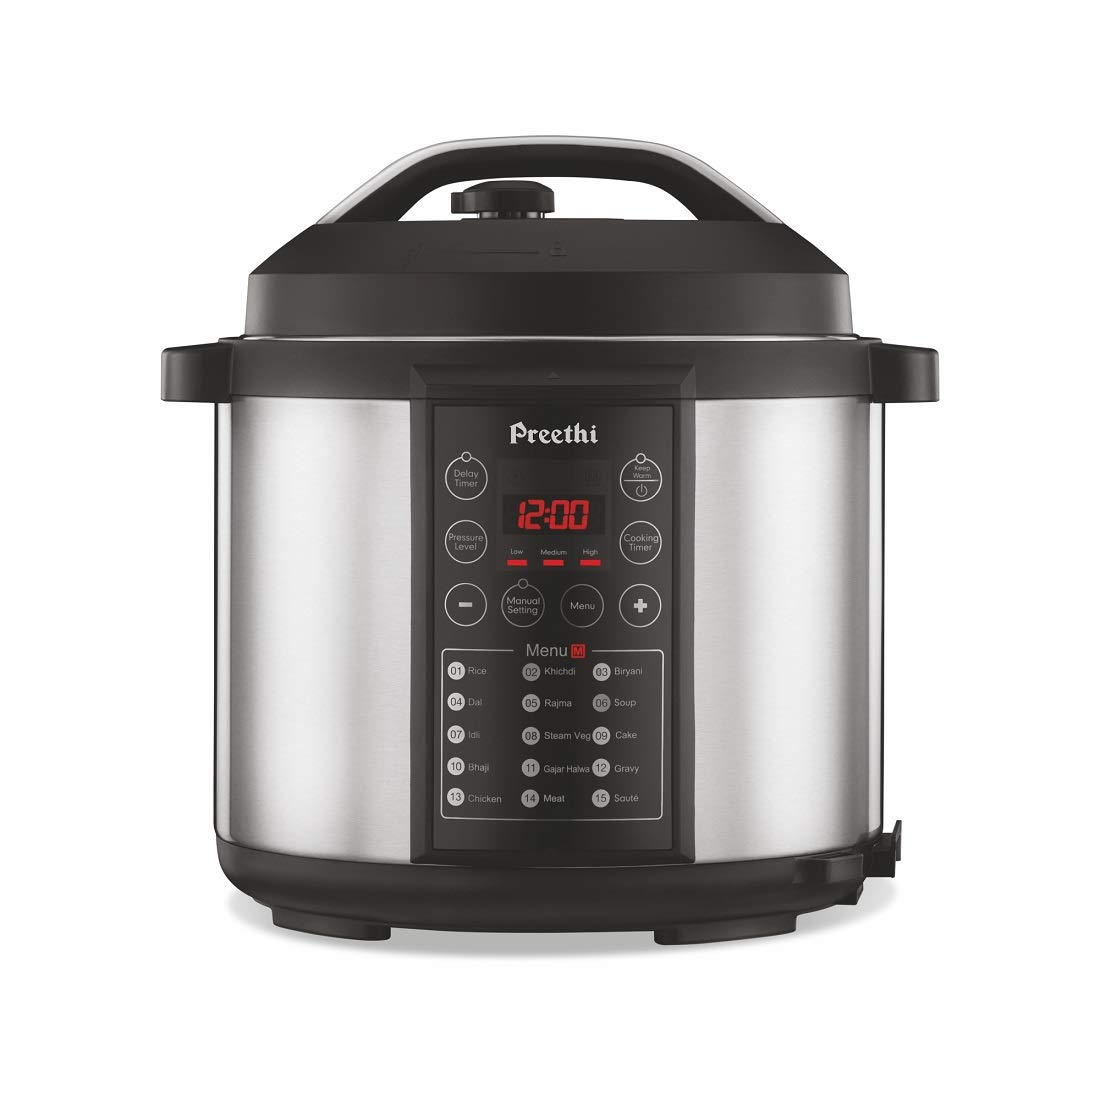 Preethi Touch EPC005 6-Liter Electric Pressure Cooker